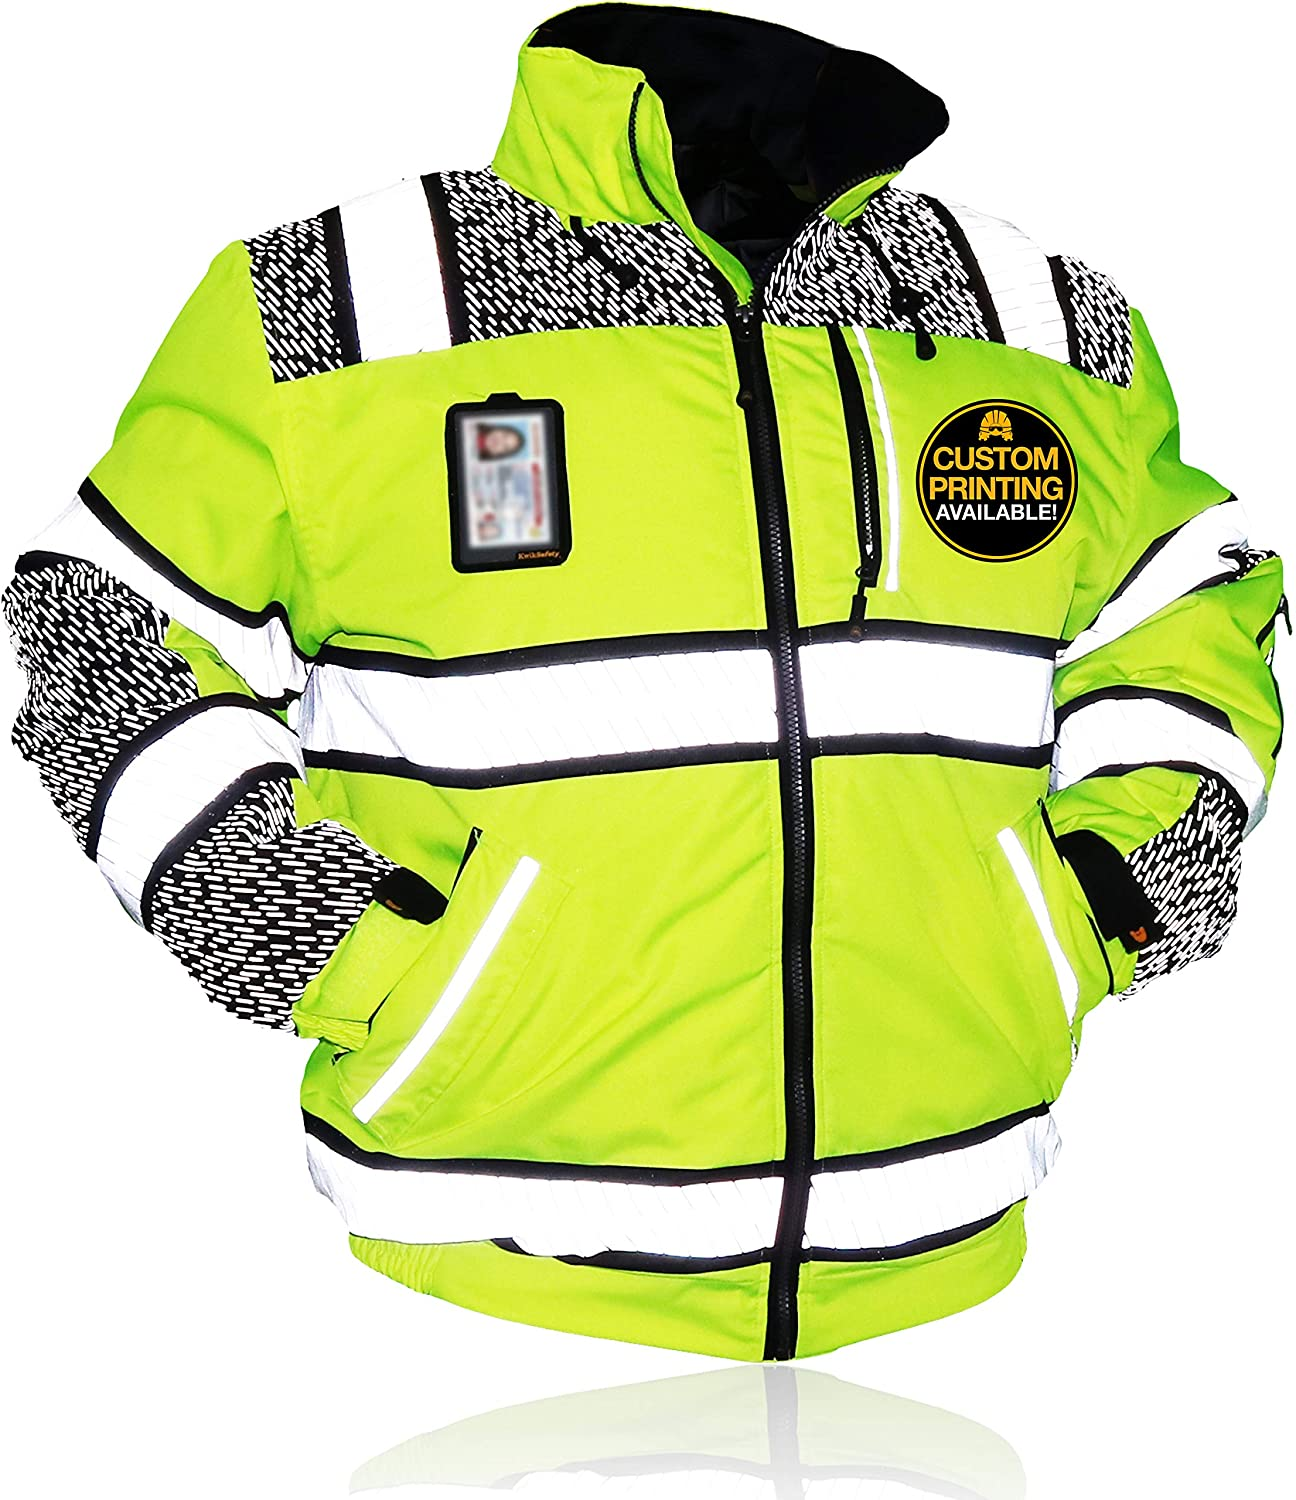 KwikSafety (Charlotte, NC) UNIVERSE Class 3 Safety Bomber Jacket High Visibility ANSI Compliant OSHA Detachable Chest iPocket Foldable Hoodie Thermal Lining Construction Work Wear | X-Large